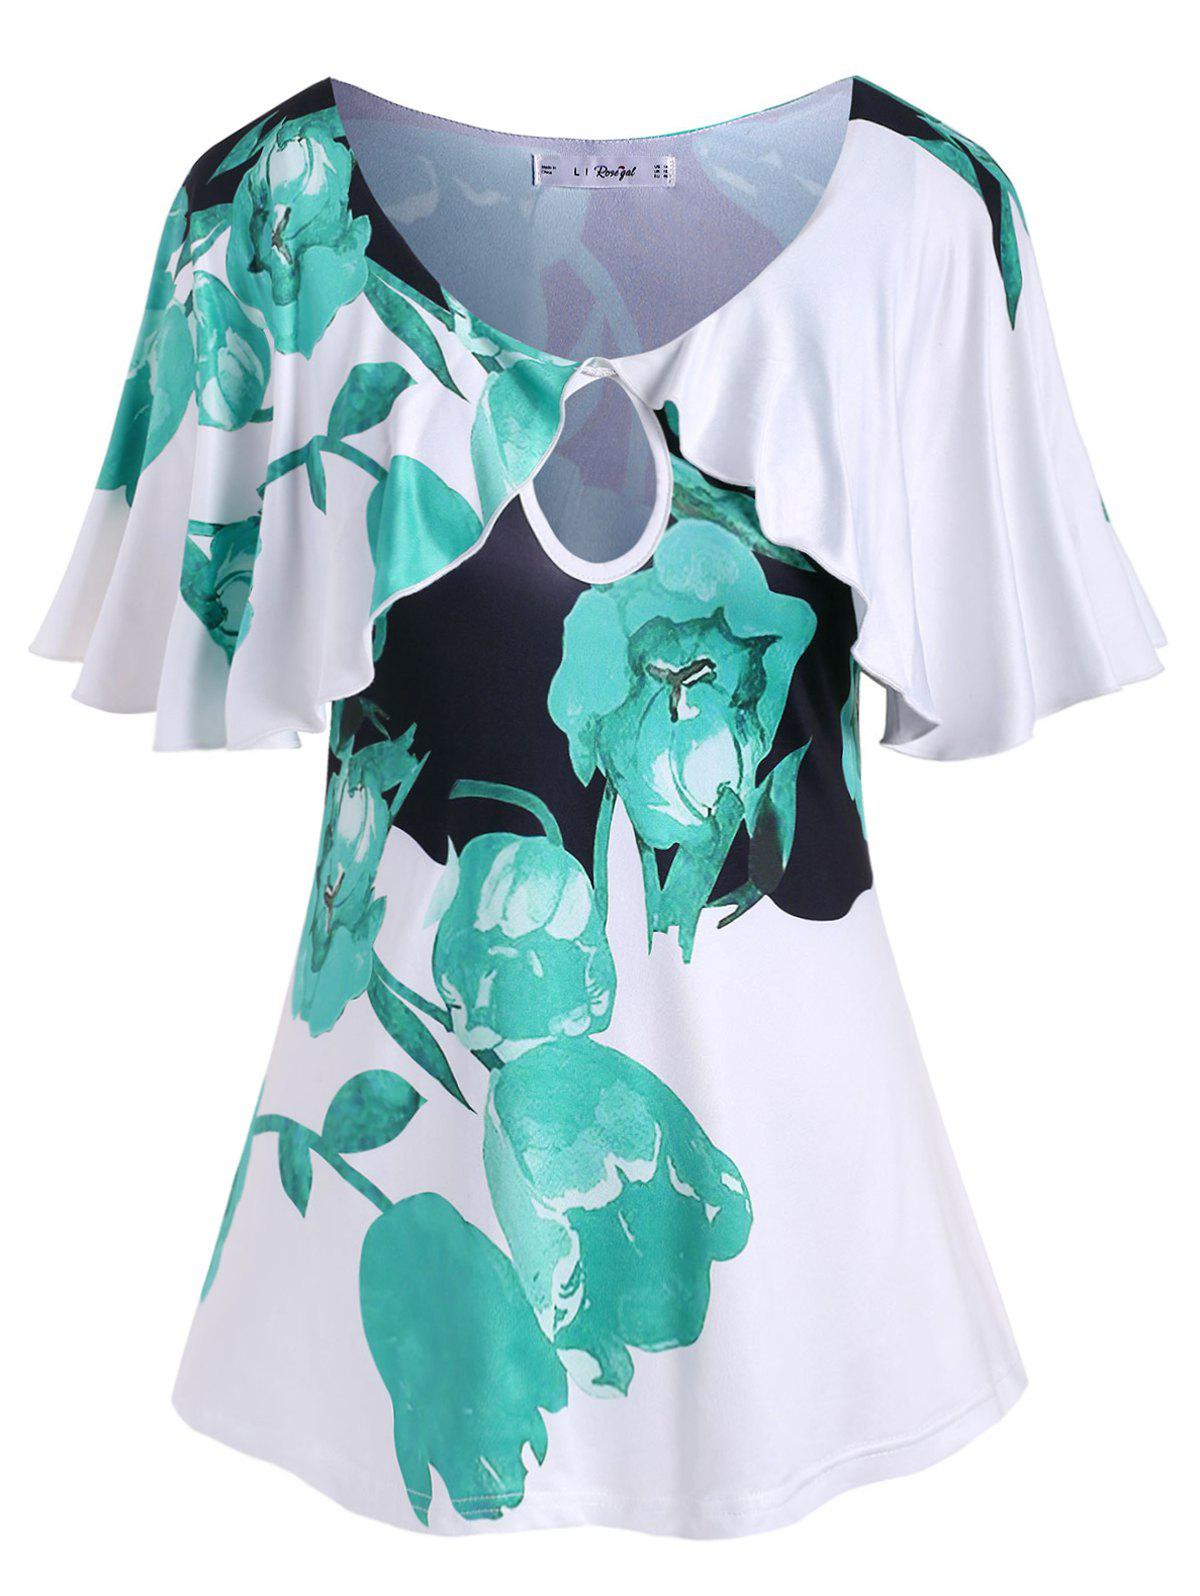 Plus Size Flutter Sleeve Keyhole Floral Print T Shirt - LIGHT SEA GREEN 2X